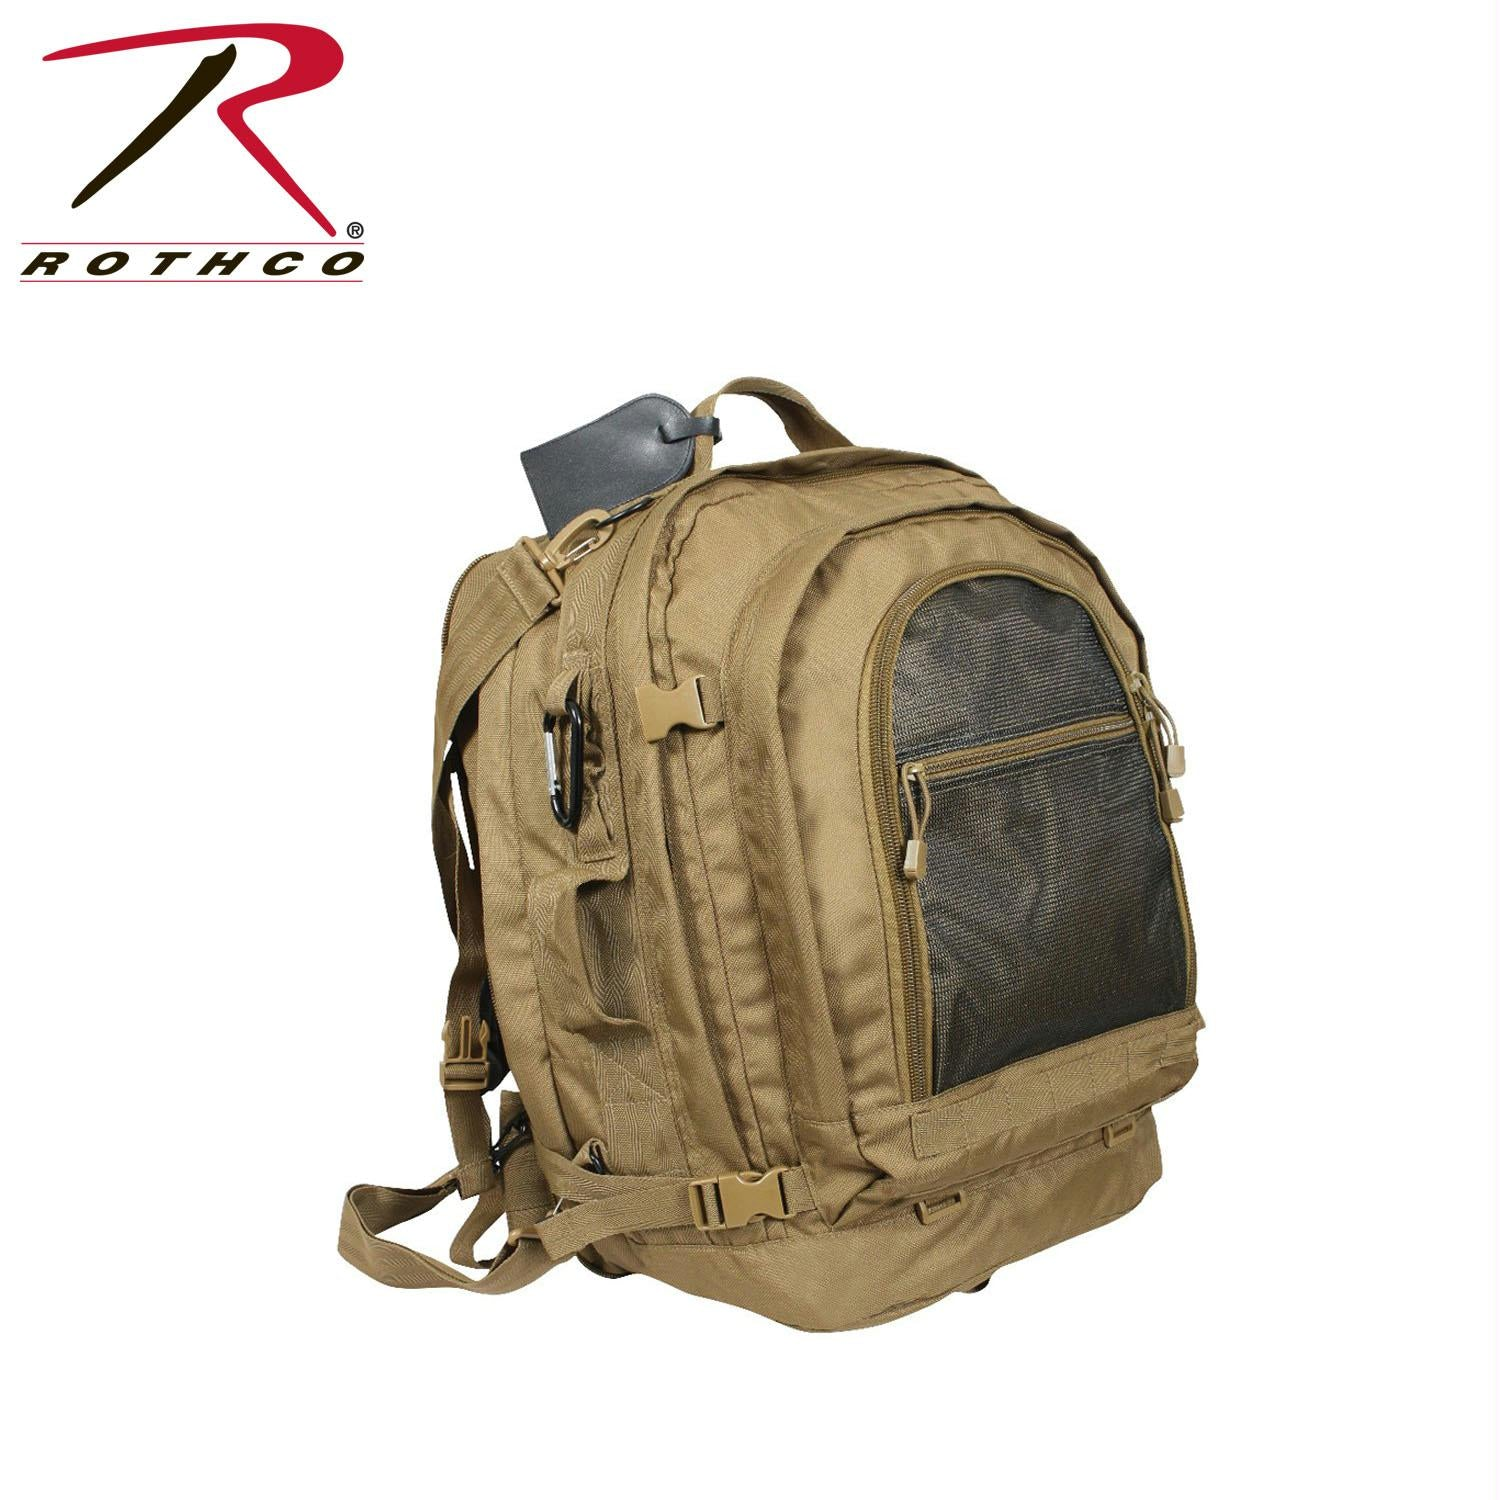 Rothco Move Out Tactical/Travel Backpack - Coyote Brown